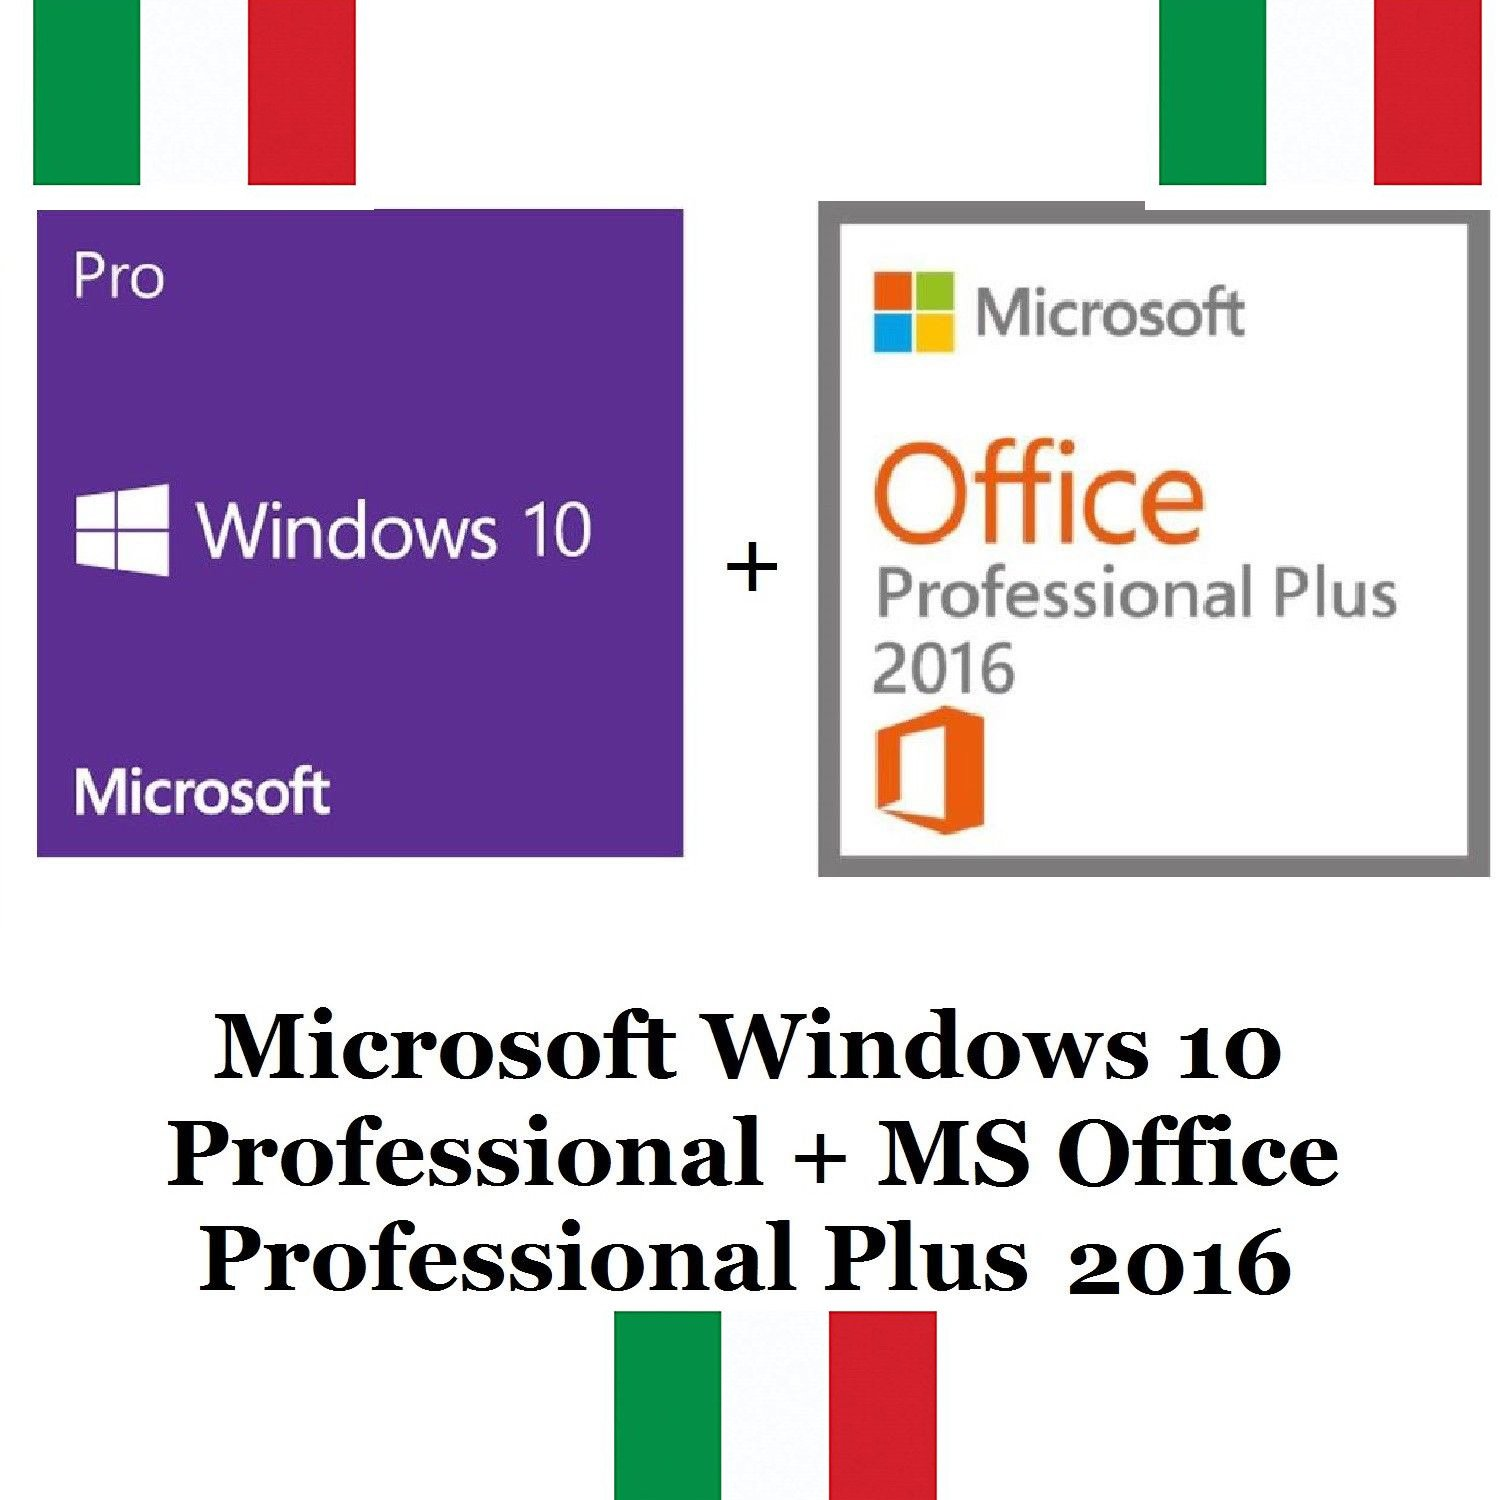 MICROSOFT WINDOWS 10 PRO + OFFICE PROFESSIONAL PLUS 2016 32 / 64 CLAVE CLAVE DE LICENCIA CLAVE ITA